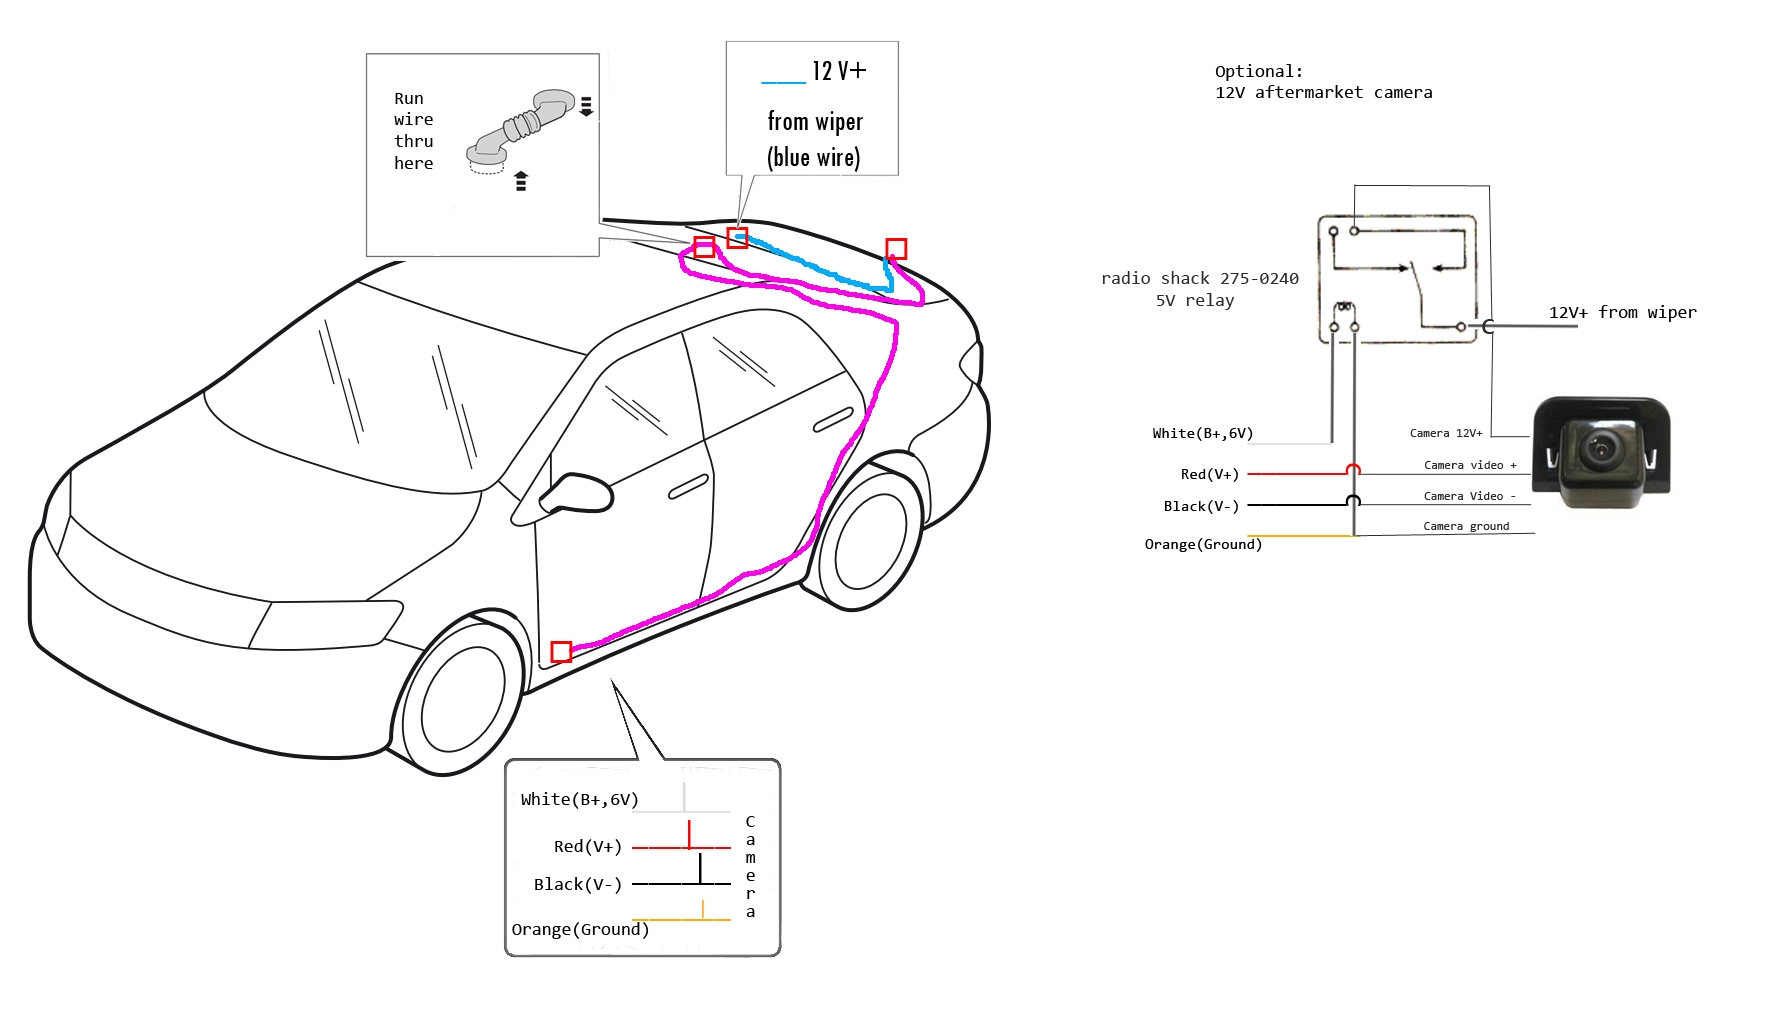 Wiring Diagram Rav4 Radio